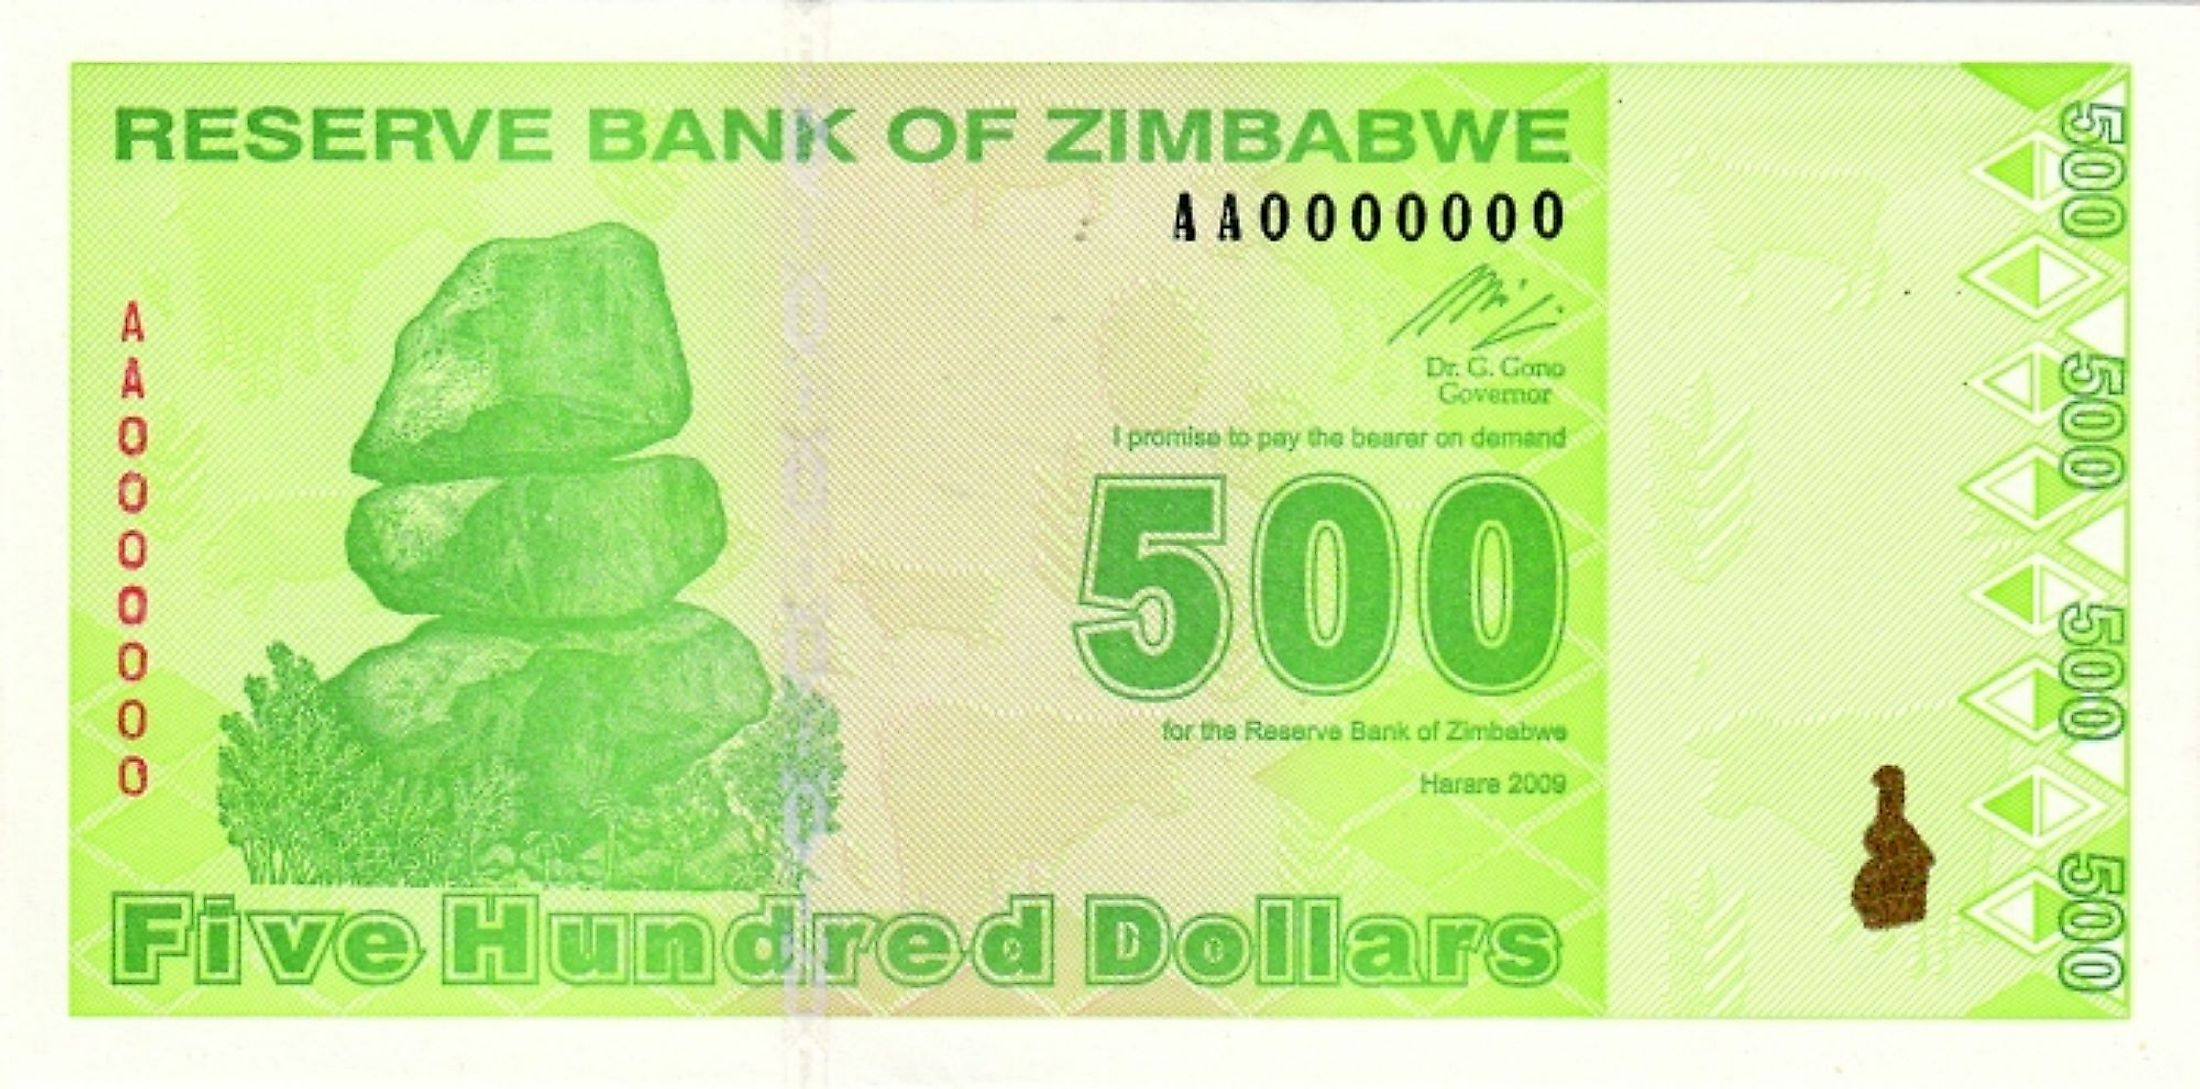 Hyperinflation caused Zimbabwe to abandon usage of the Zimbabwean Dollar in 2009.